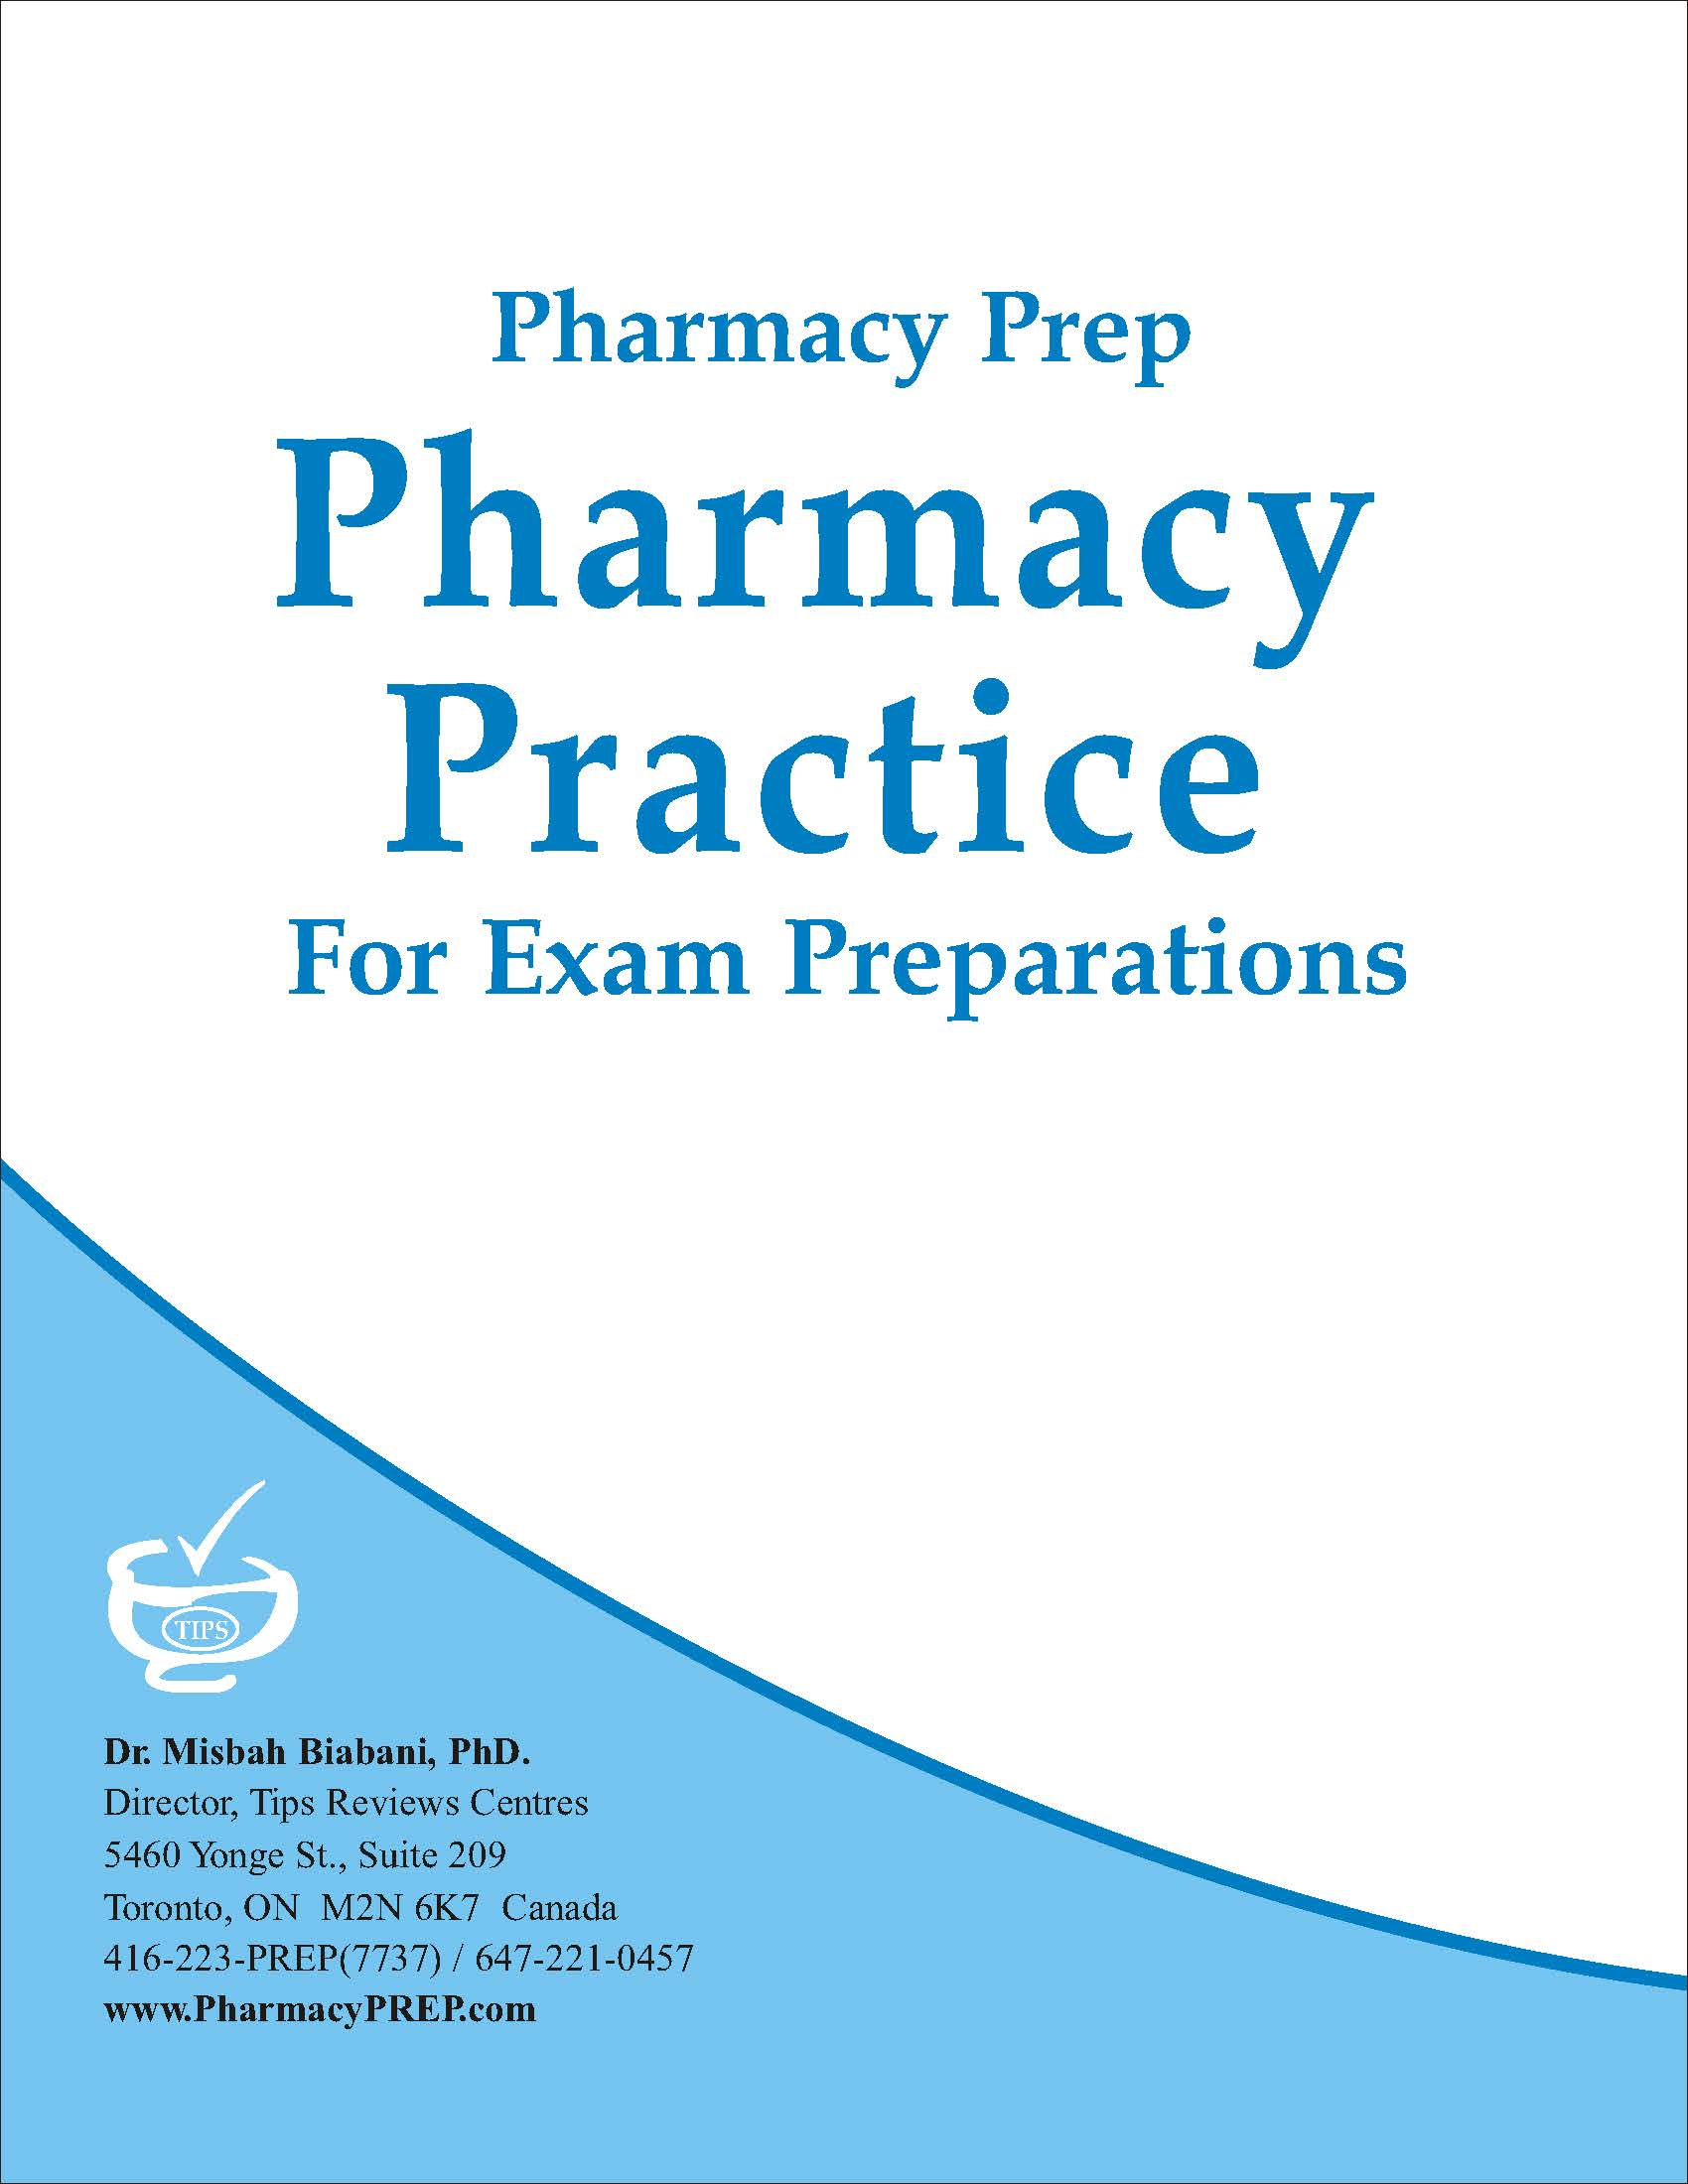 Pharmacy Practice - Misbah Biabani, Ph.D.